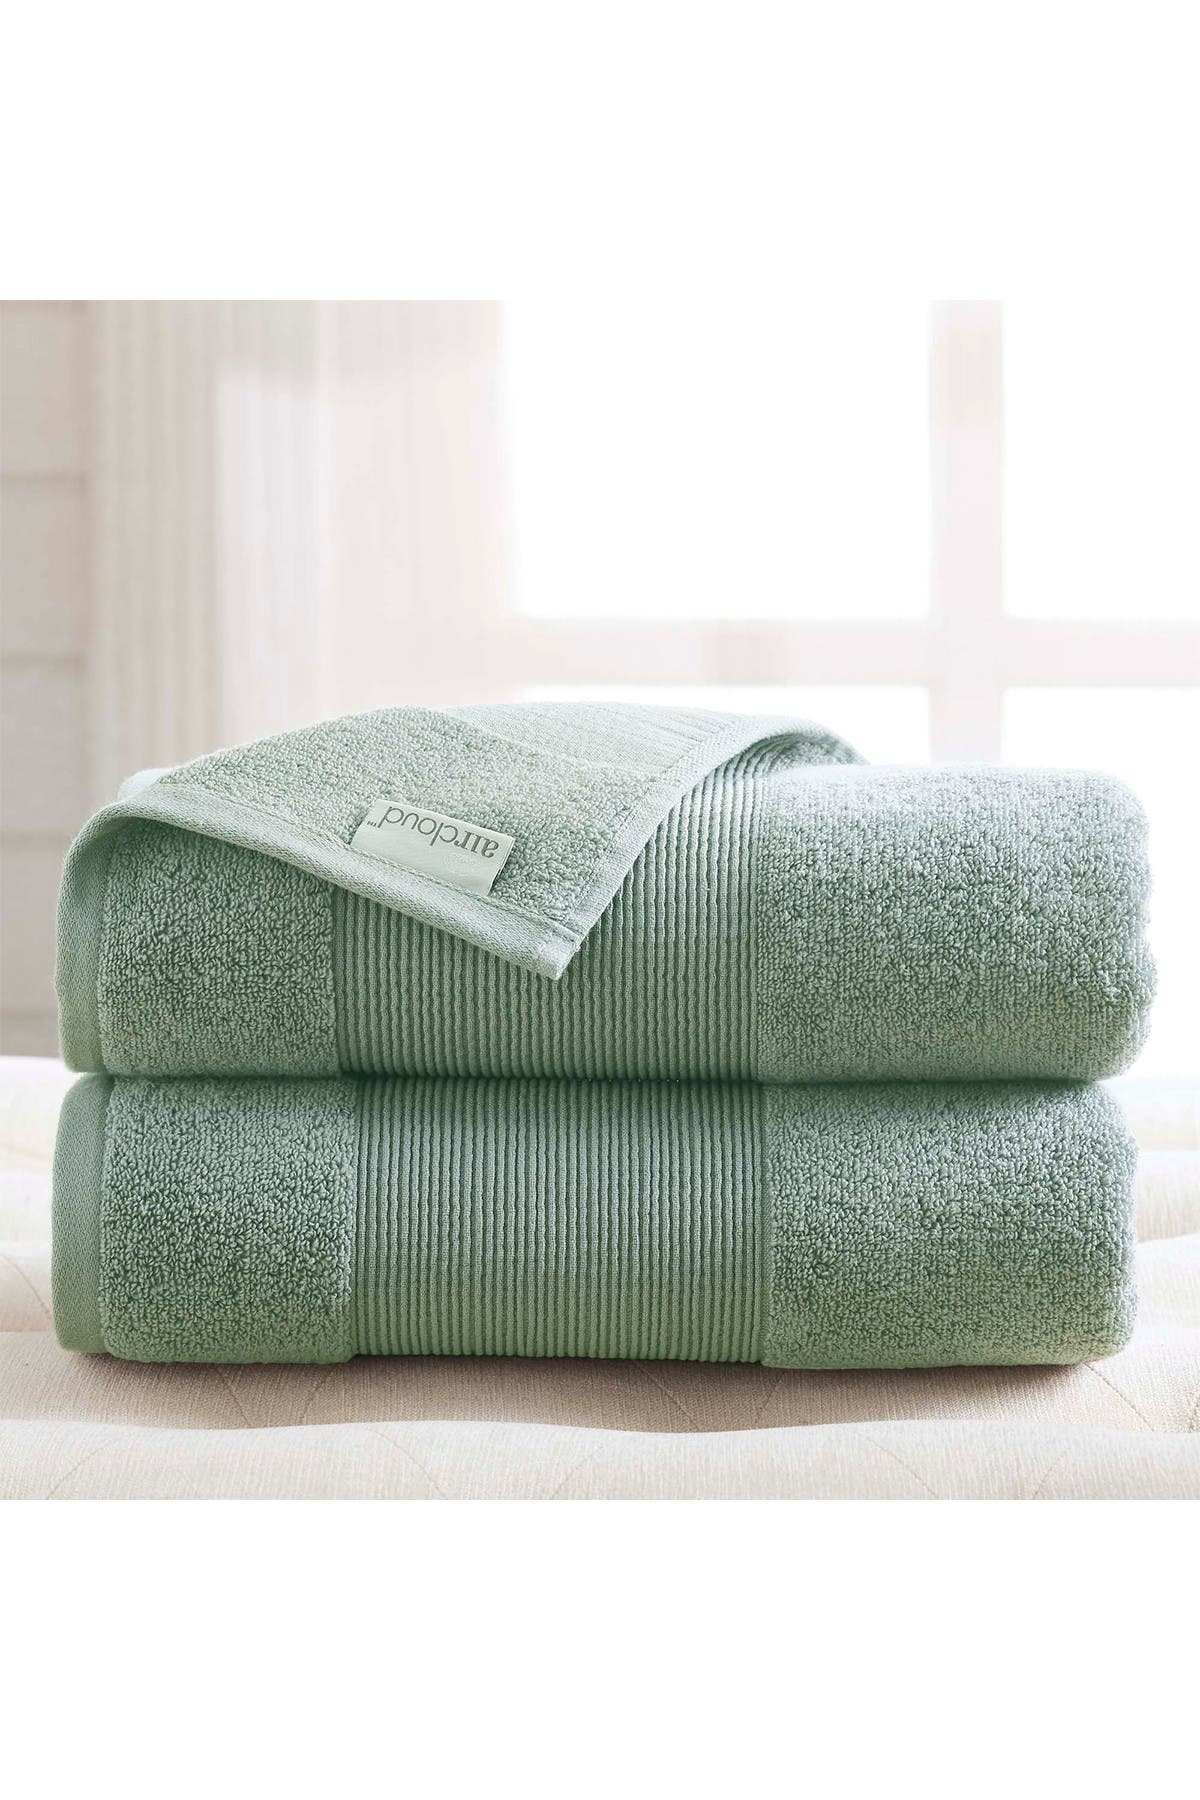 Image of Modern Threads Air Cloud Oversized Bath Sheet - Set of 2 - Eucalyptus